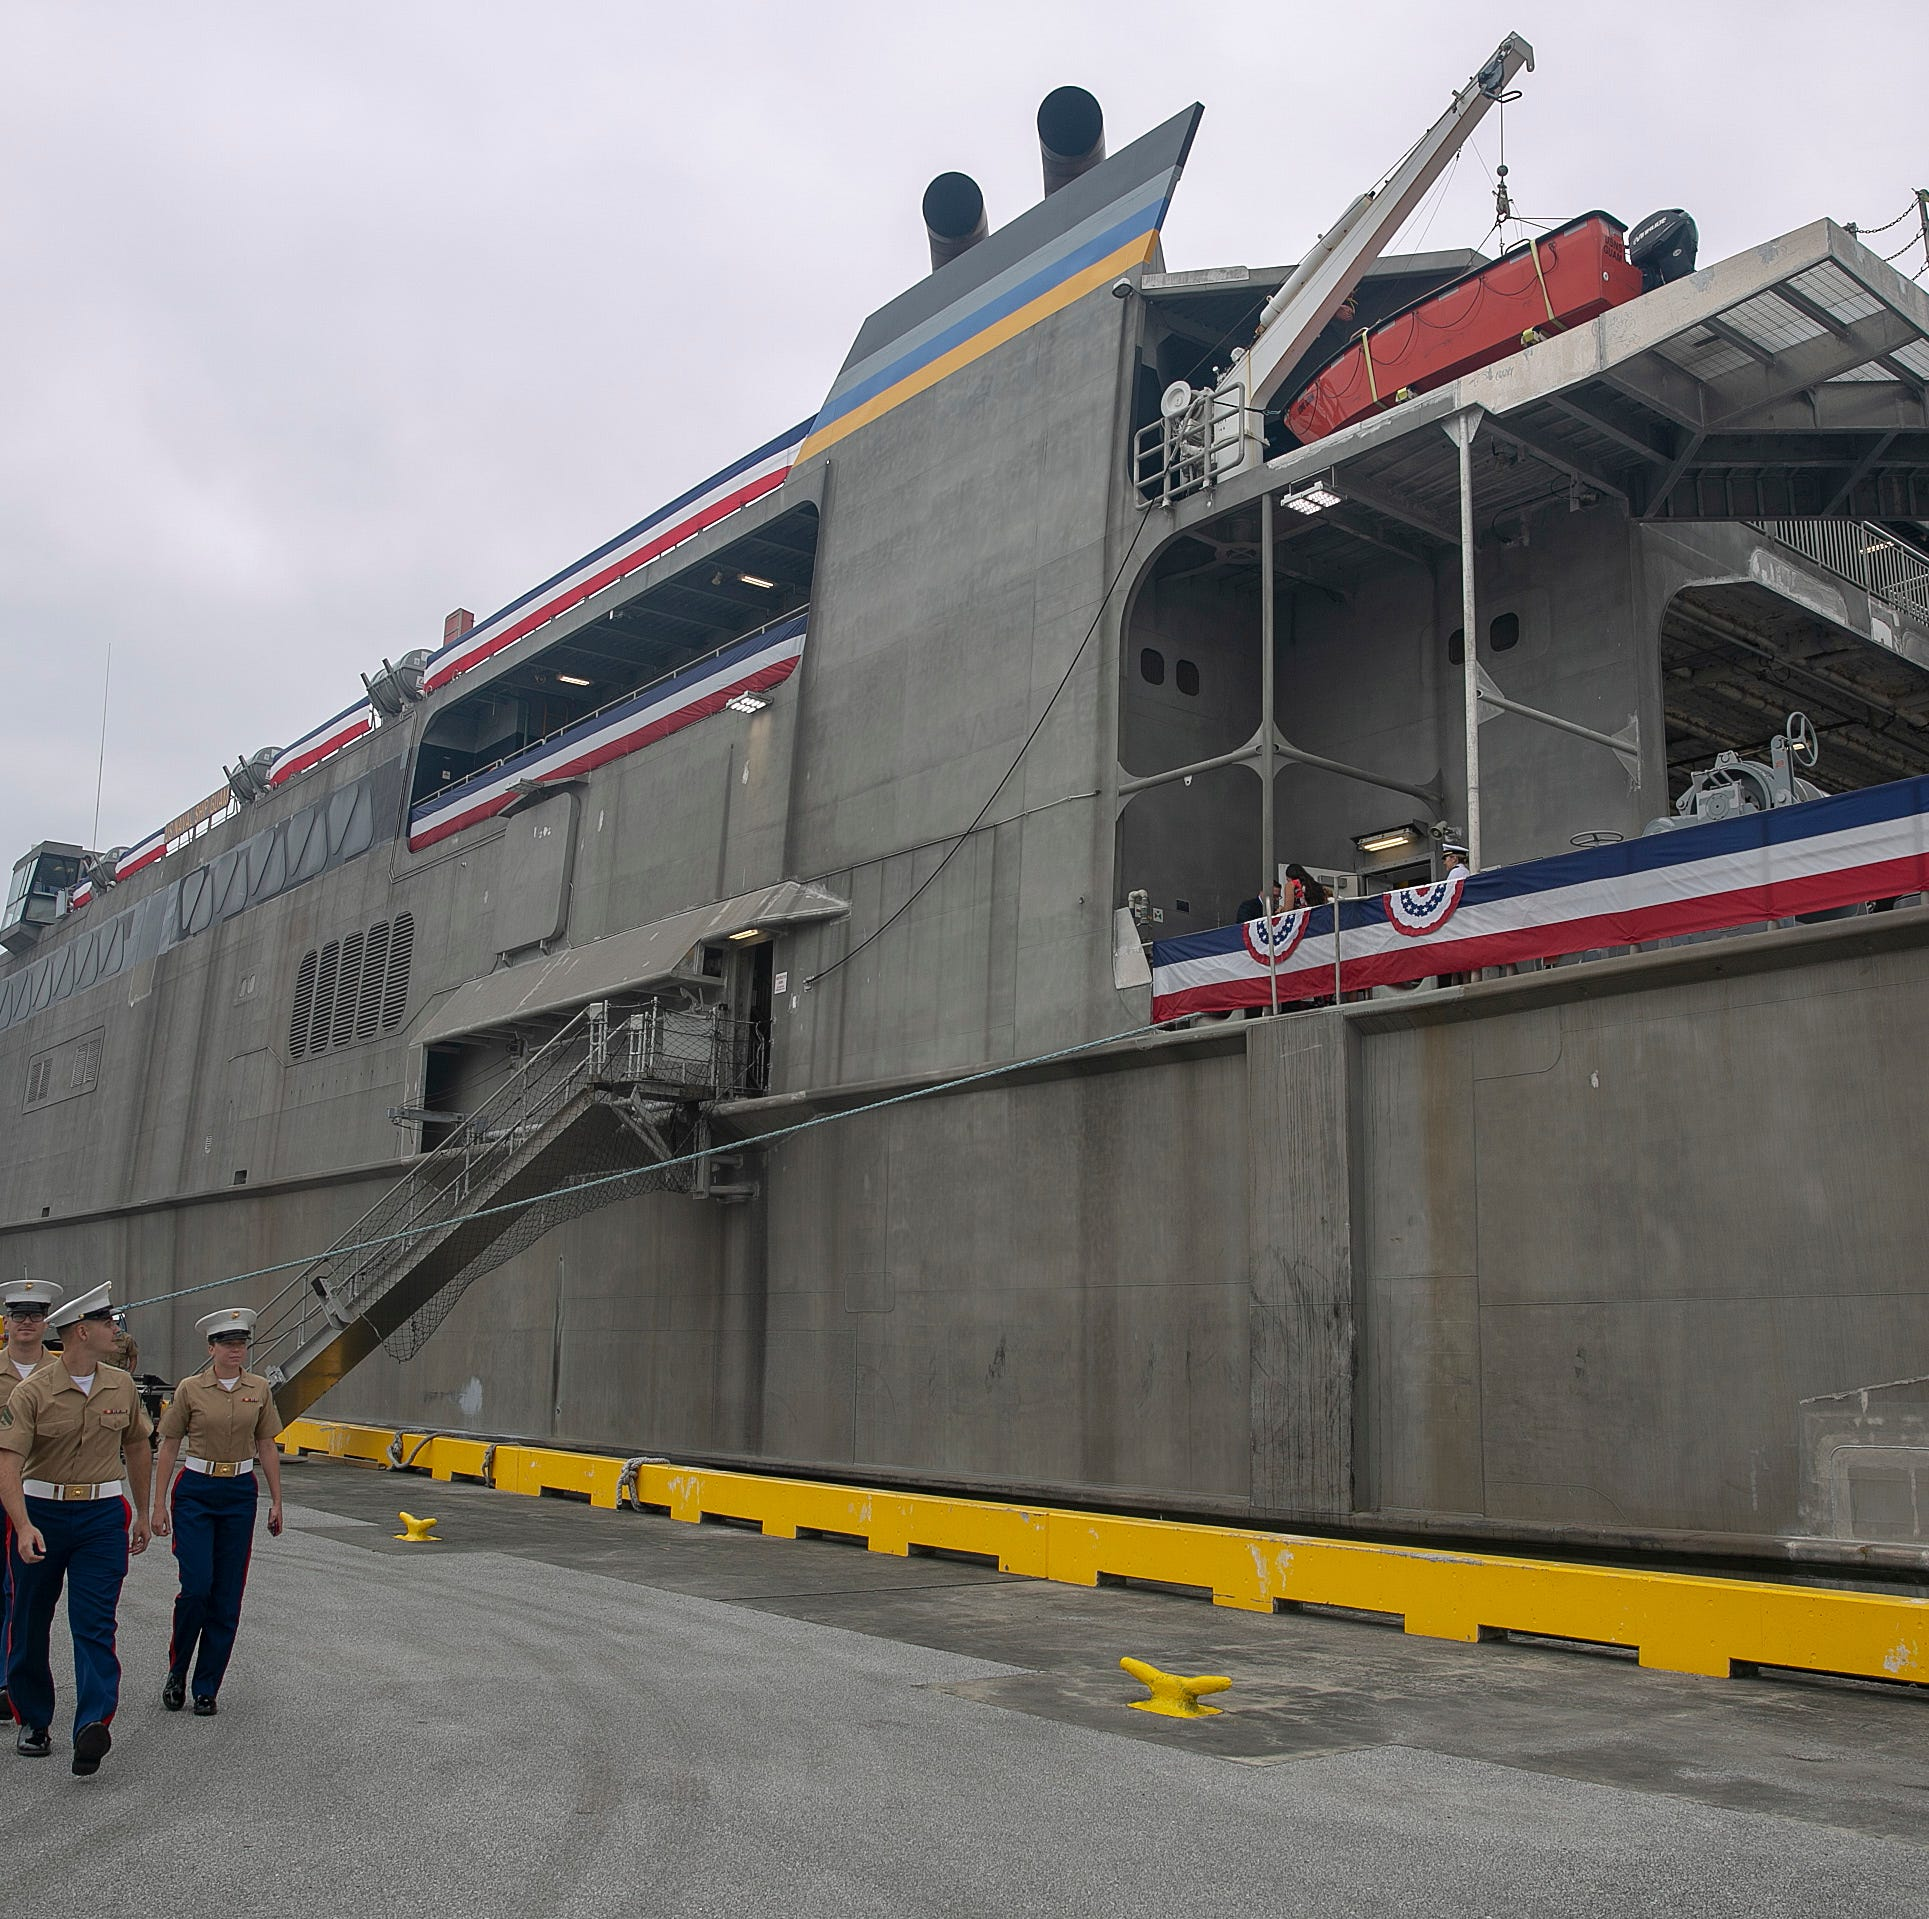 Military ship named after Guam